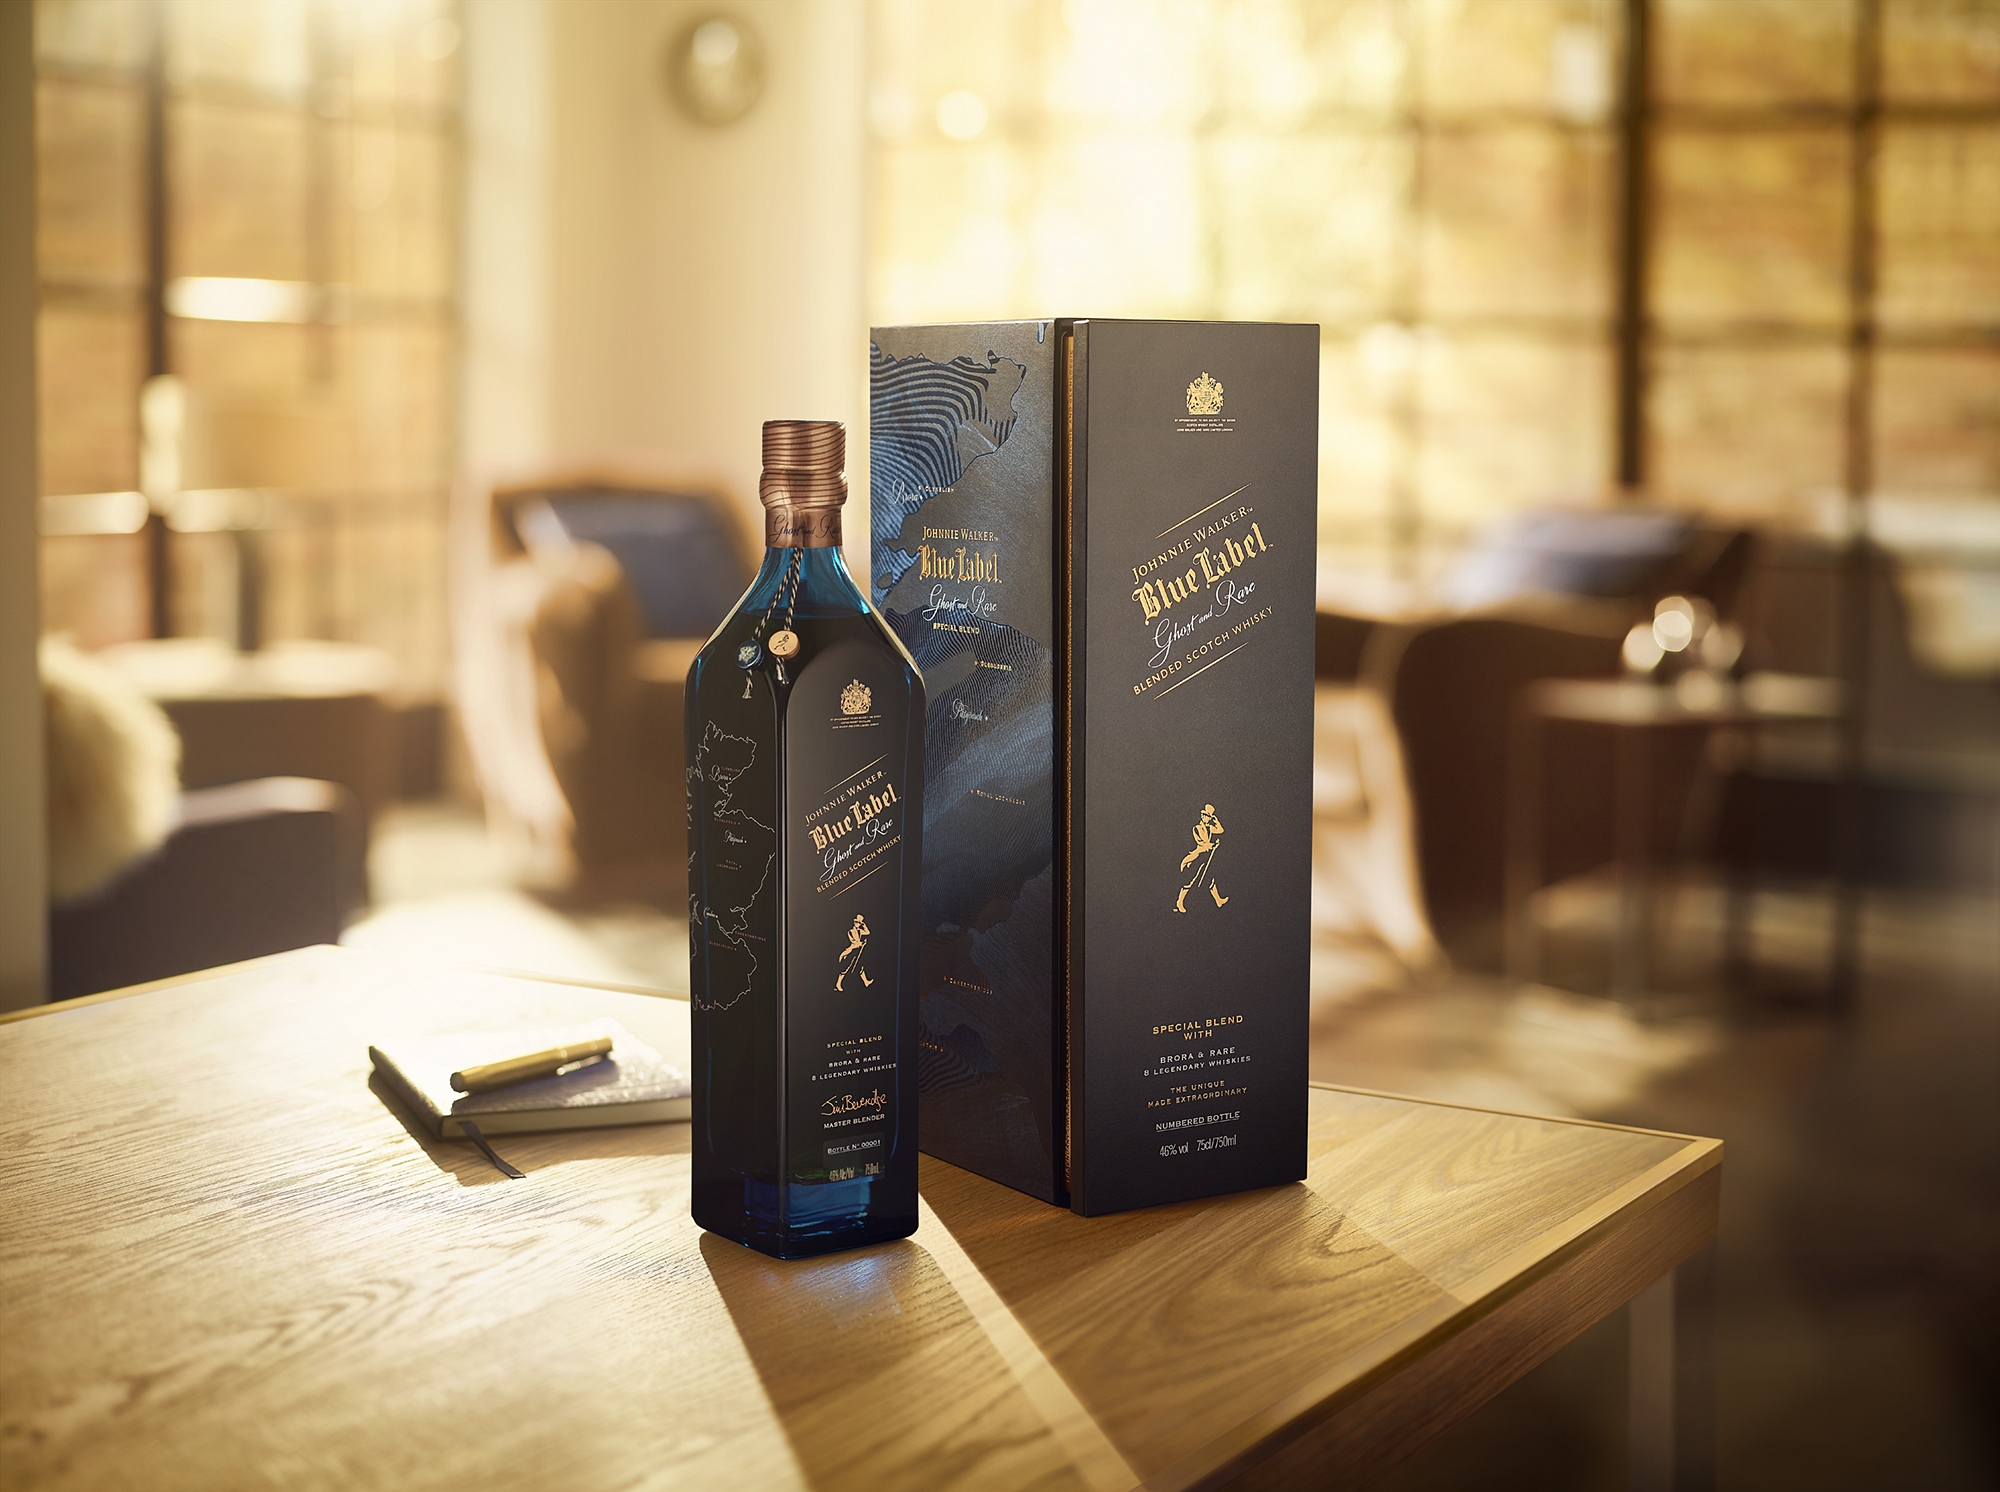 Johnnie Walker Blue Label Ghost and Rare_Bottle Image_3